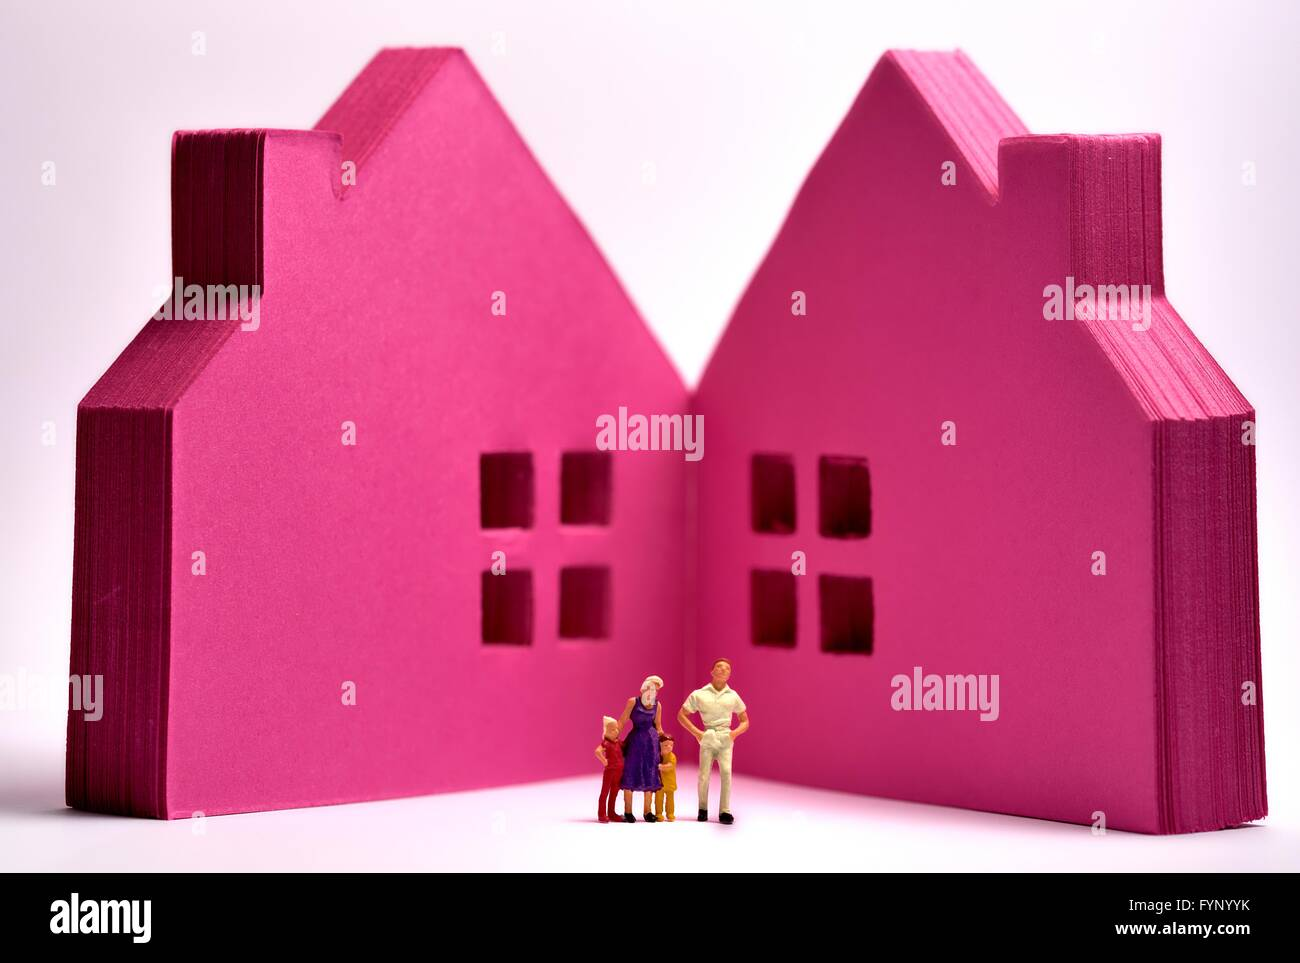 Pink post it notes in the shape of  houses with a miniature figurine family standing in front - Stock Image